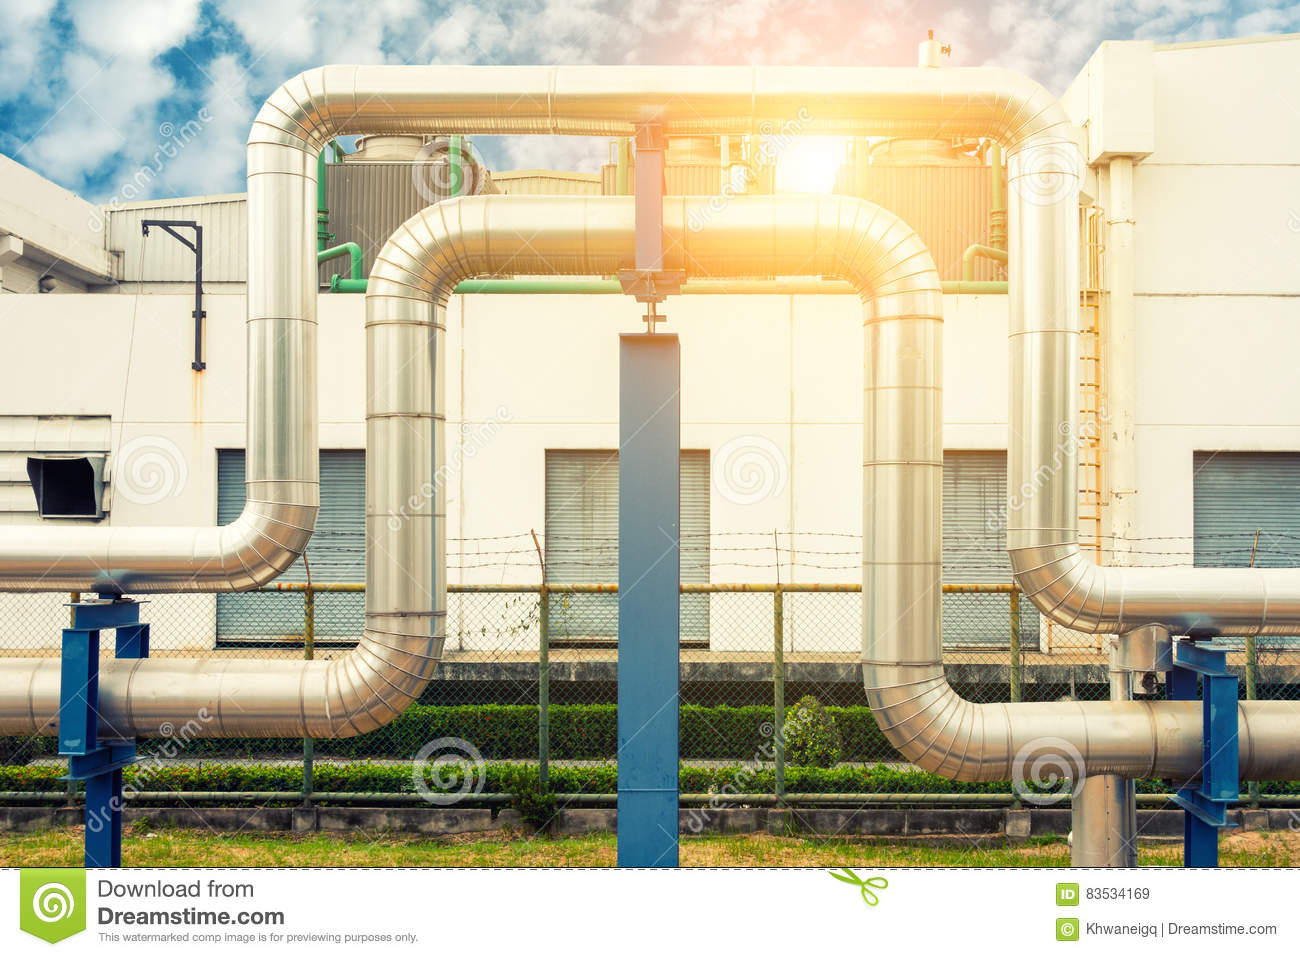 Loop steam pipeline on cooling tower background and sunshine., Insulation pipe.